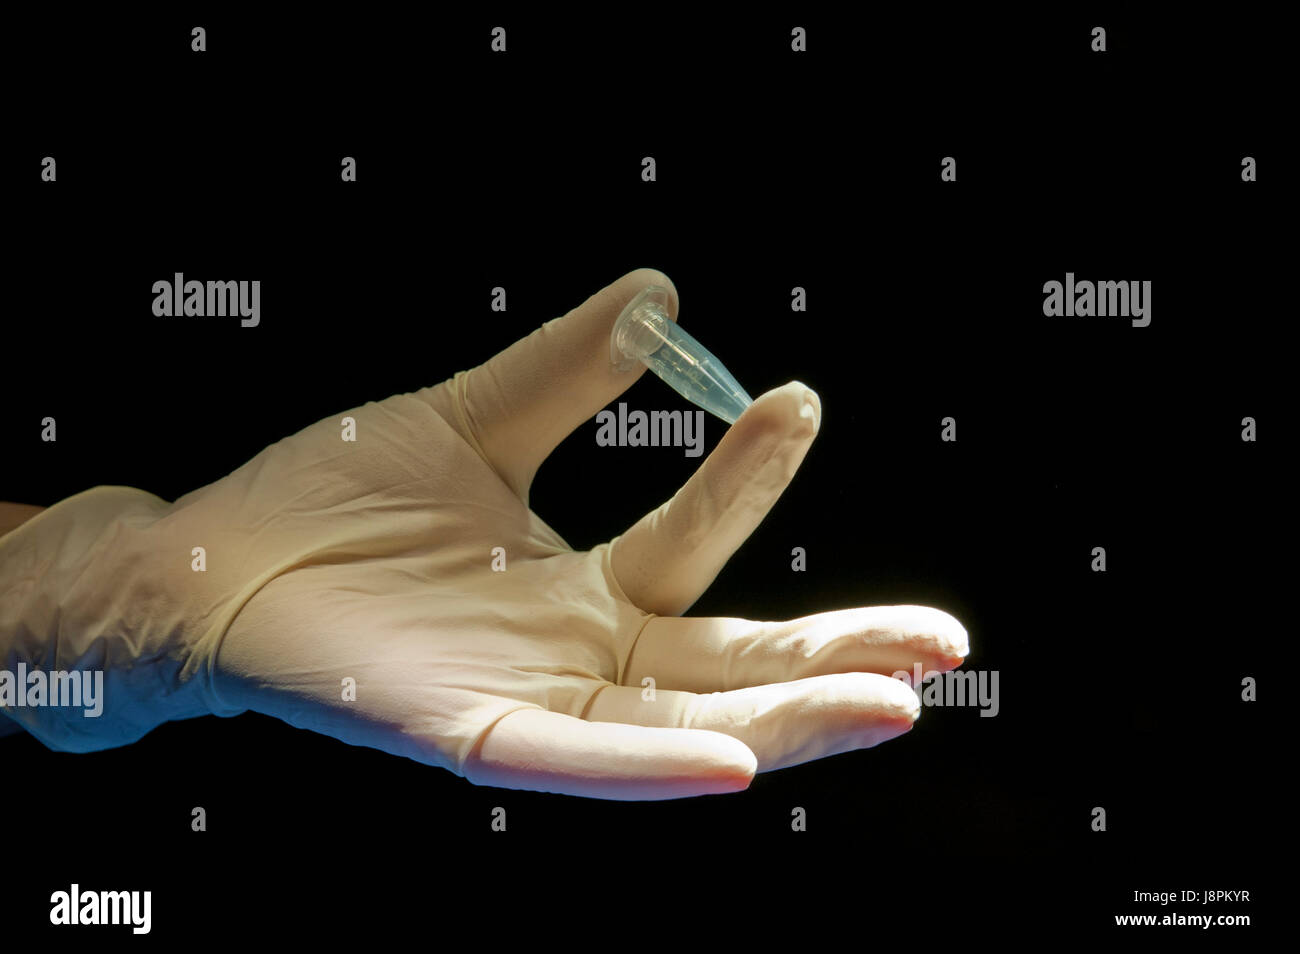 hand, glove, tube, covered, in, possession, holding, white, pipe, doctor, - Stock Image